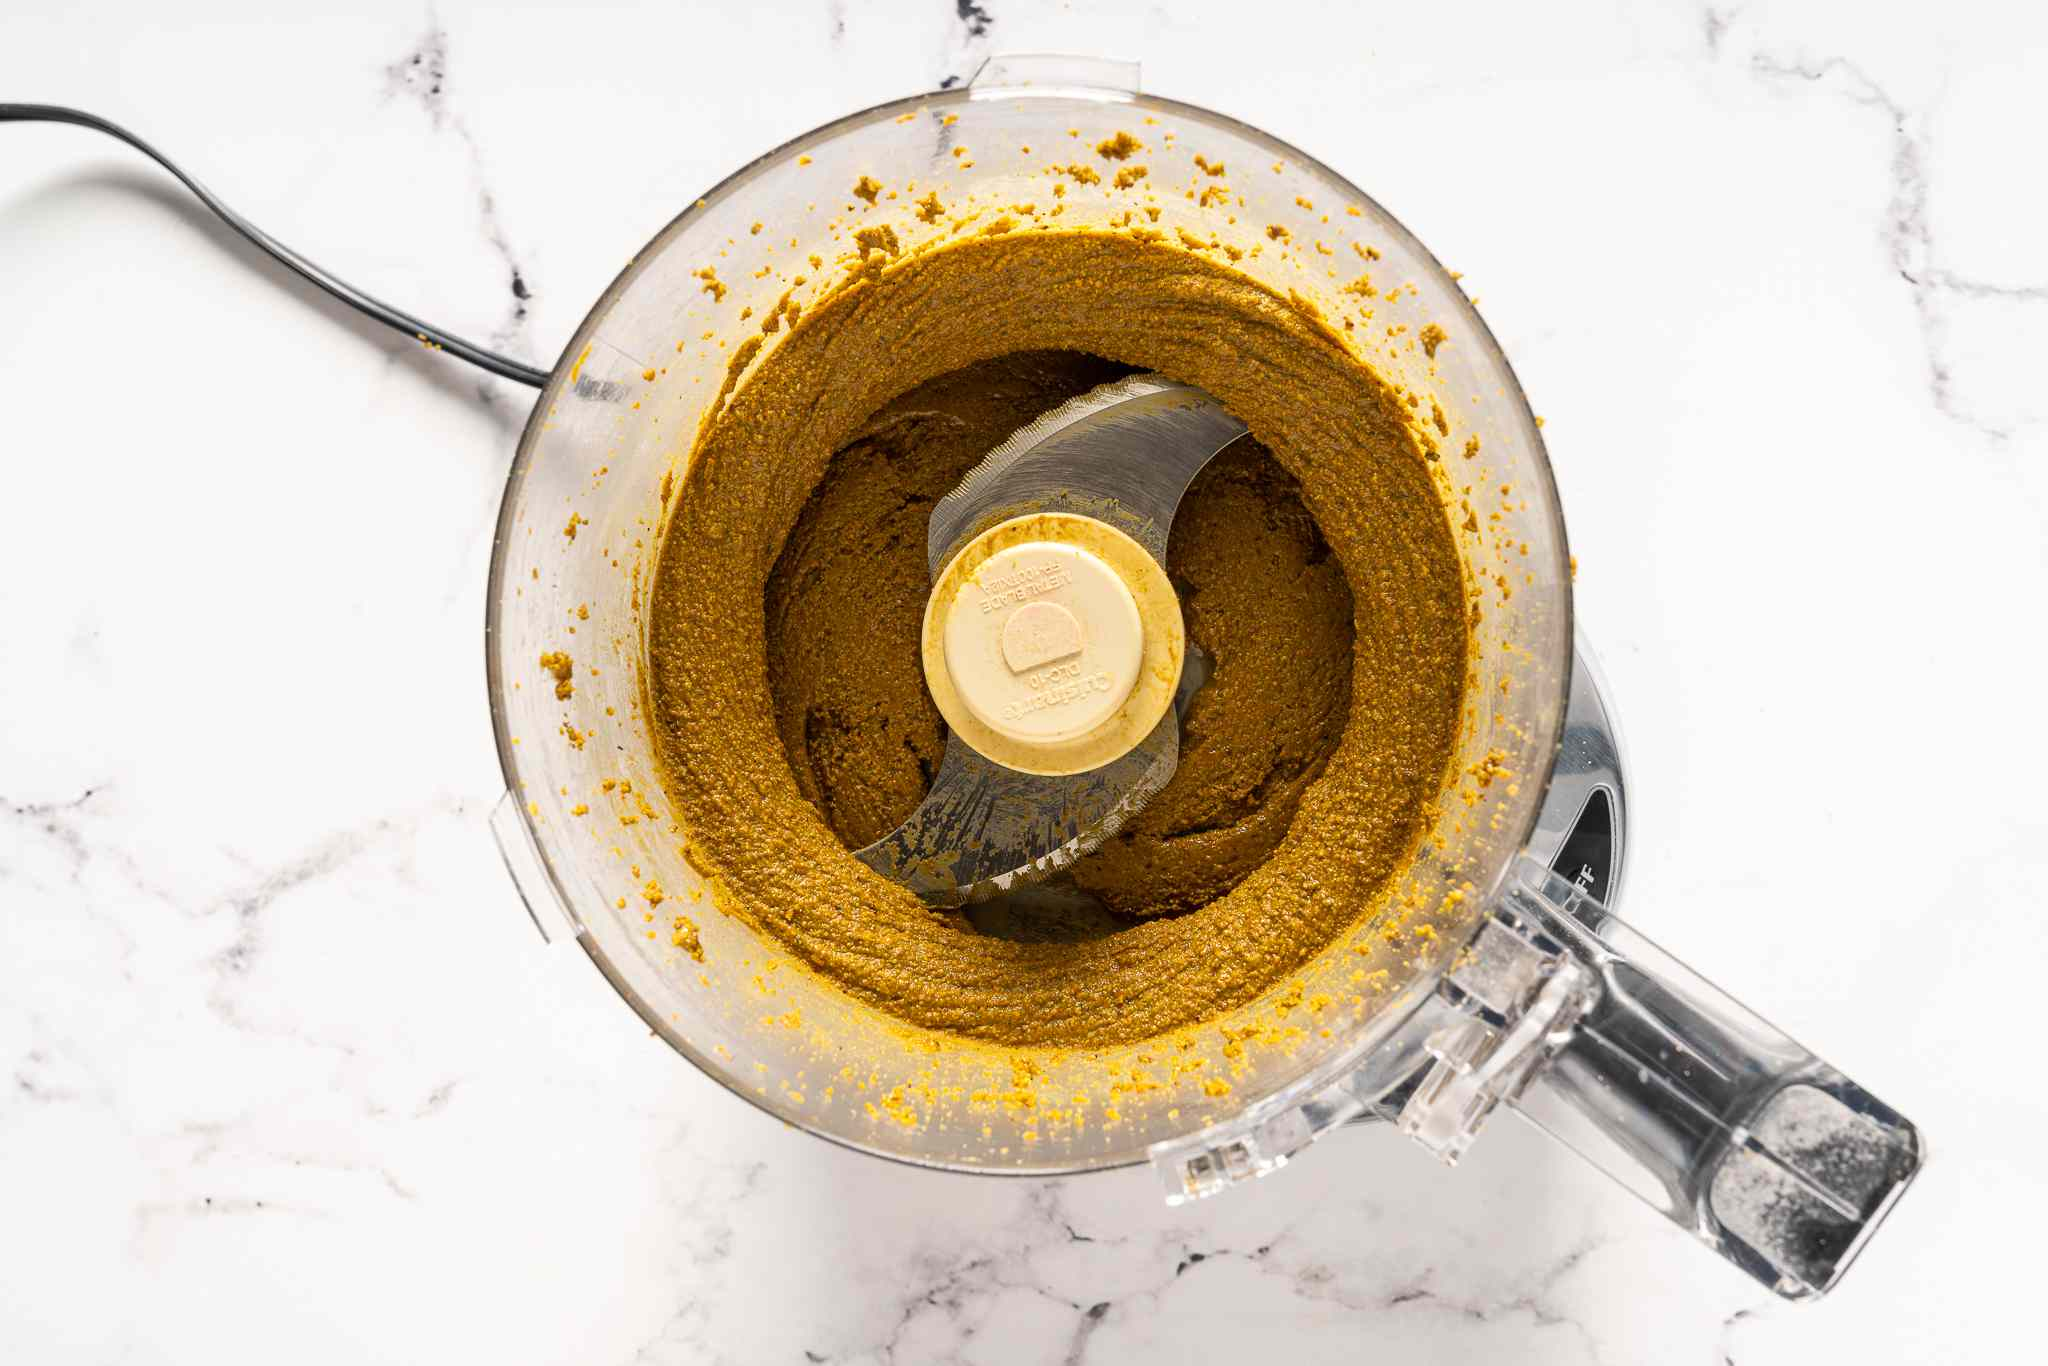 Pistachio butter in the food processor